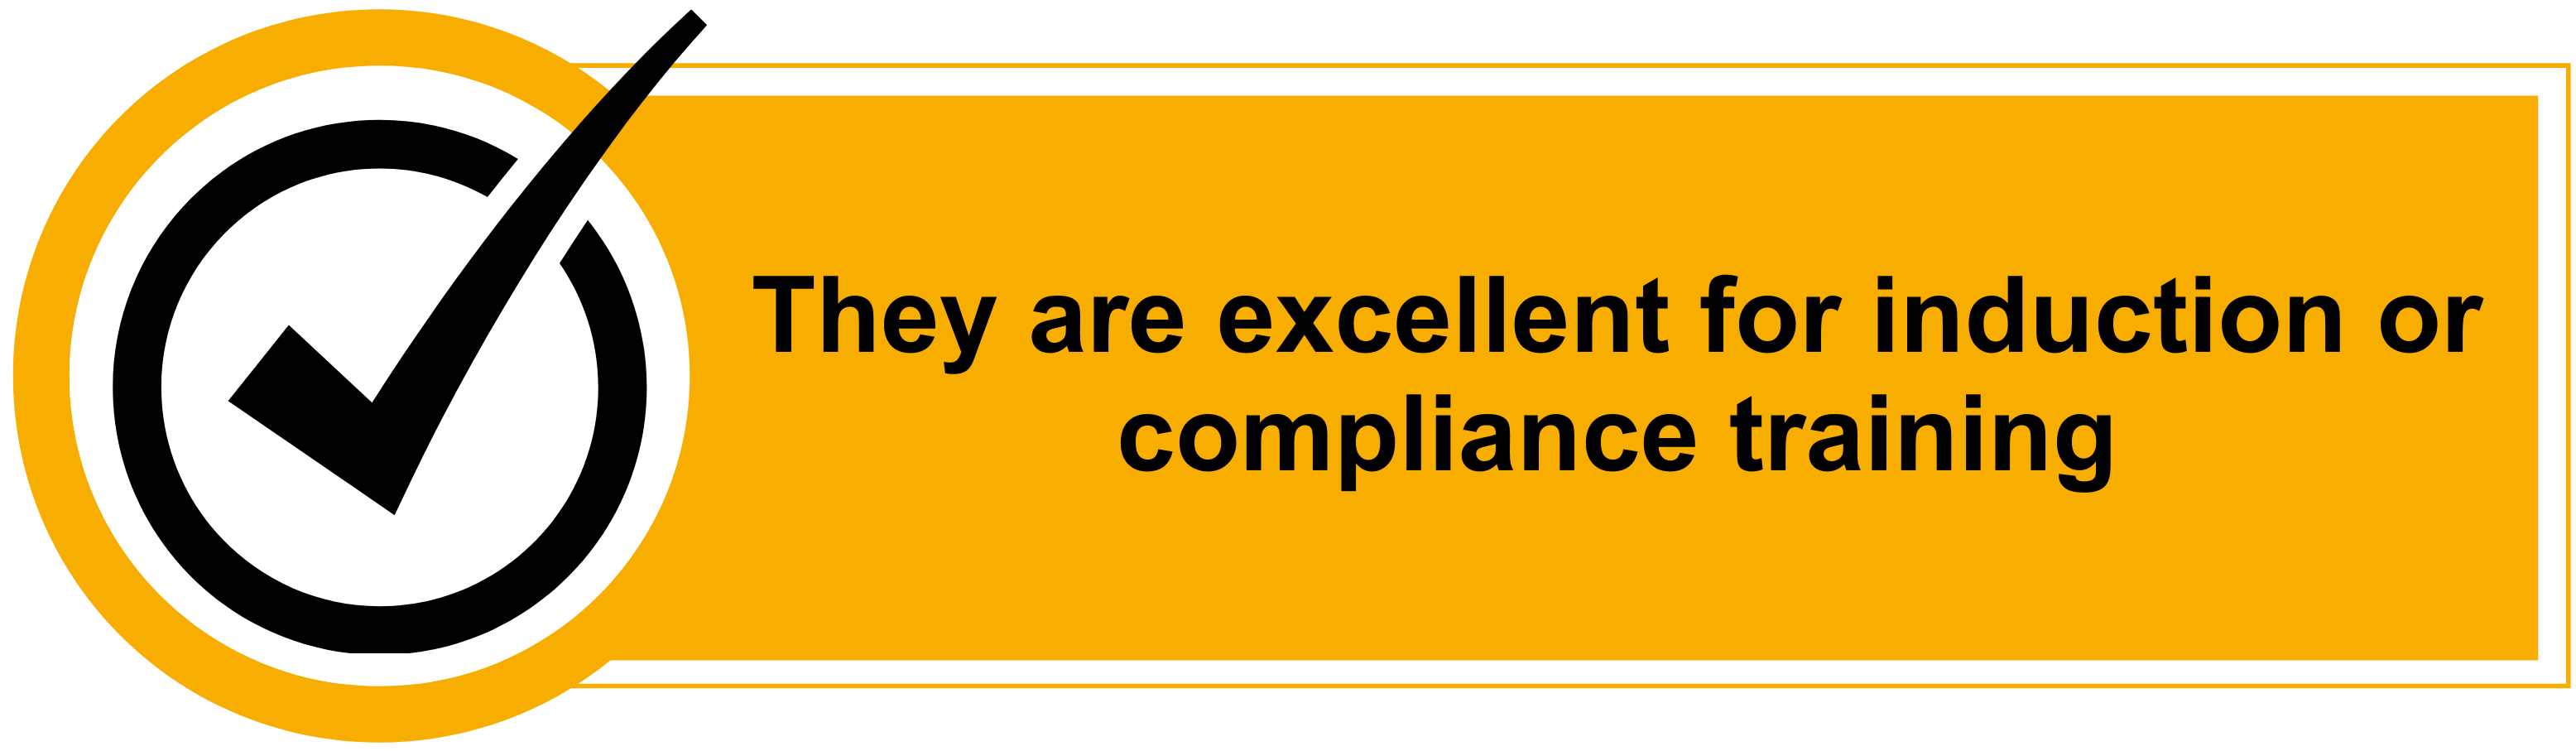 They are excellent for induction or compliance training